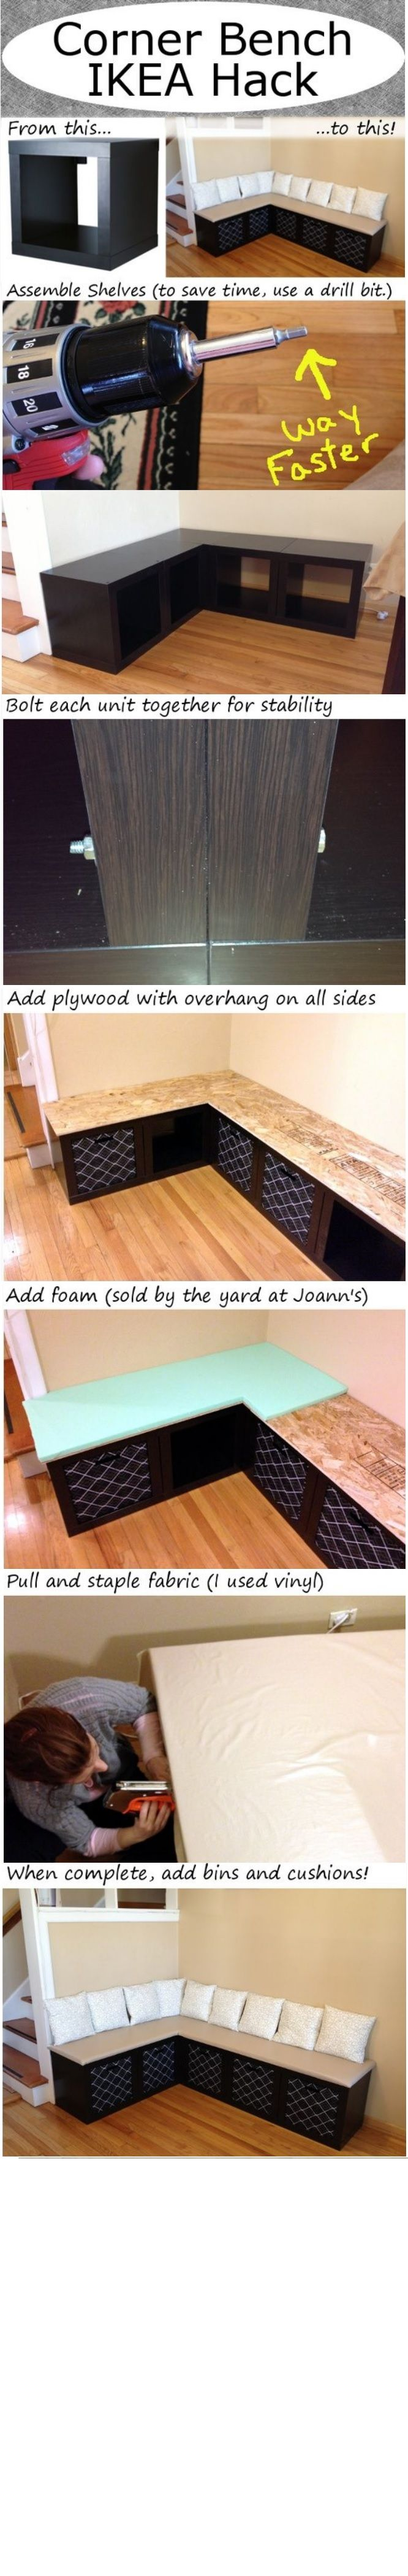 DIY Corner bench                                                                                                                                                      More